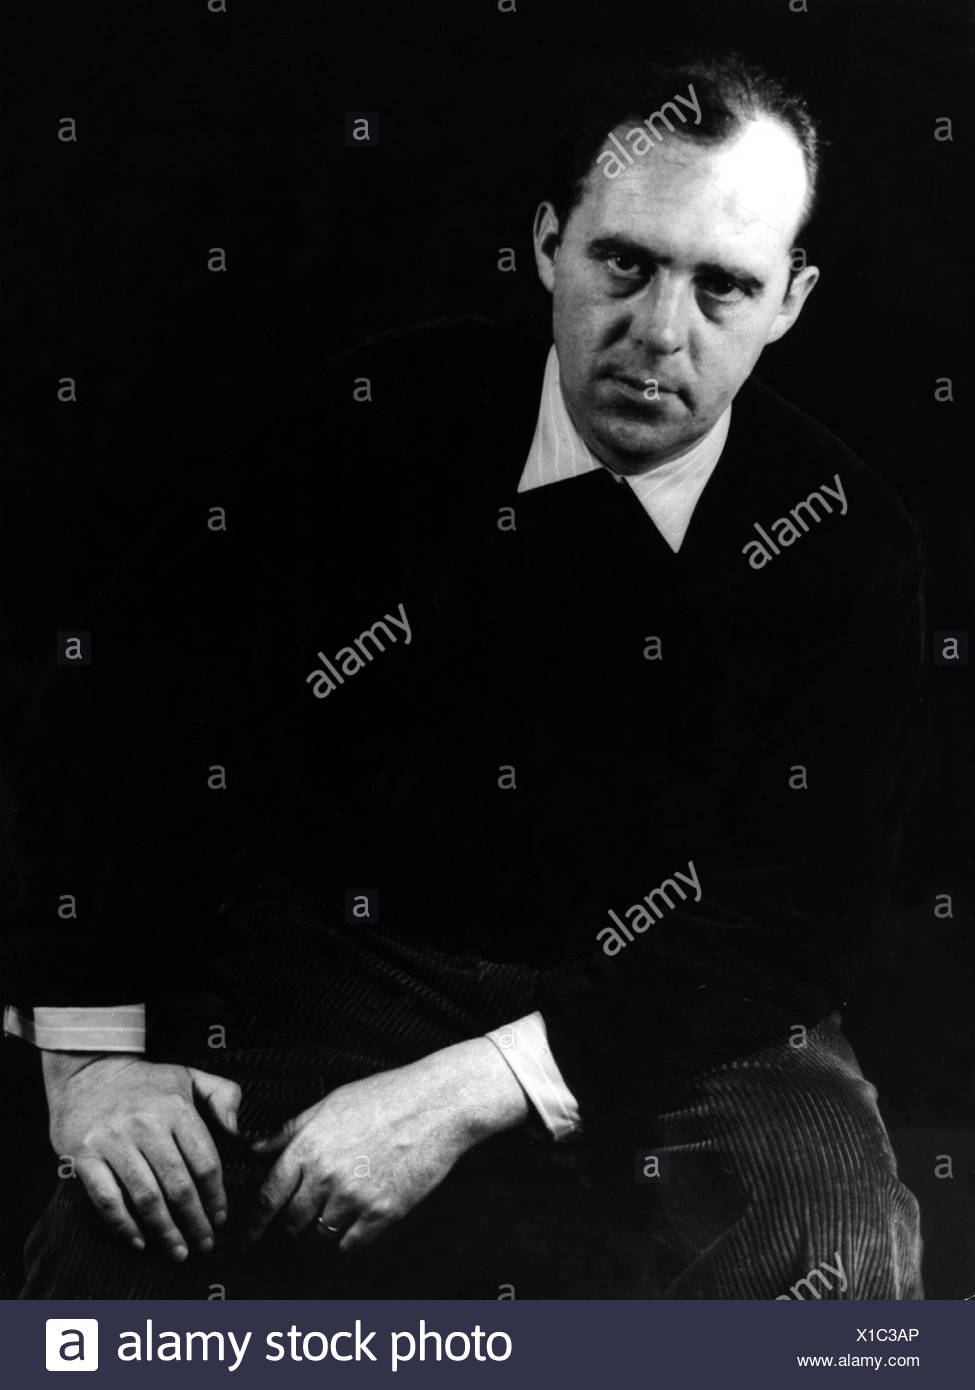 Böll, Heinrich  21.12.1917 - 16.7.1985, German author / writer, half length, , Additional-Rights-Clearances-NA - Stock Image